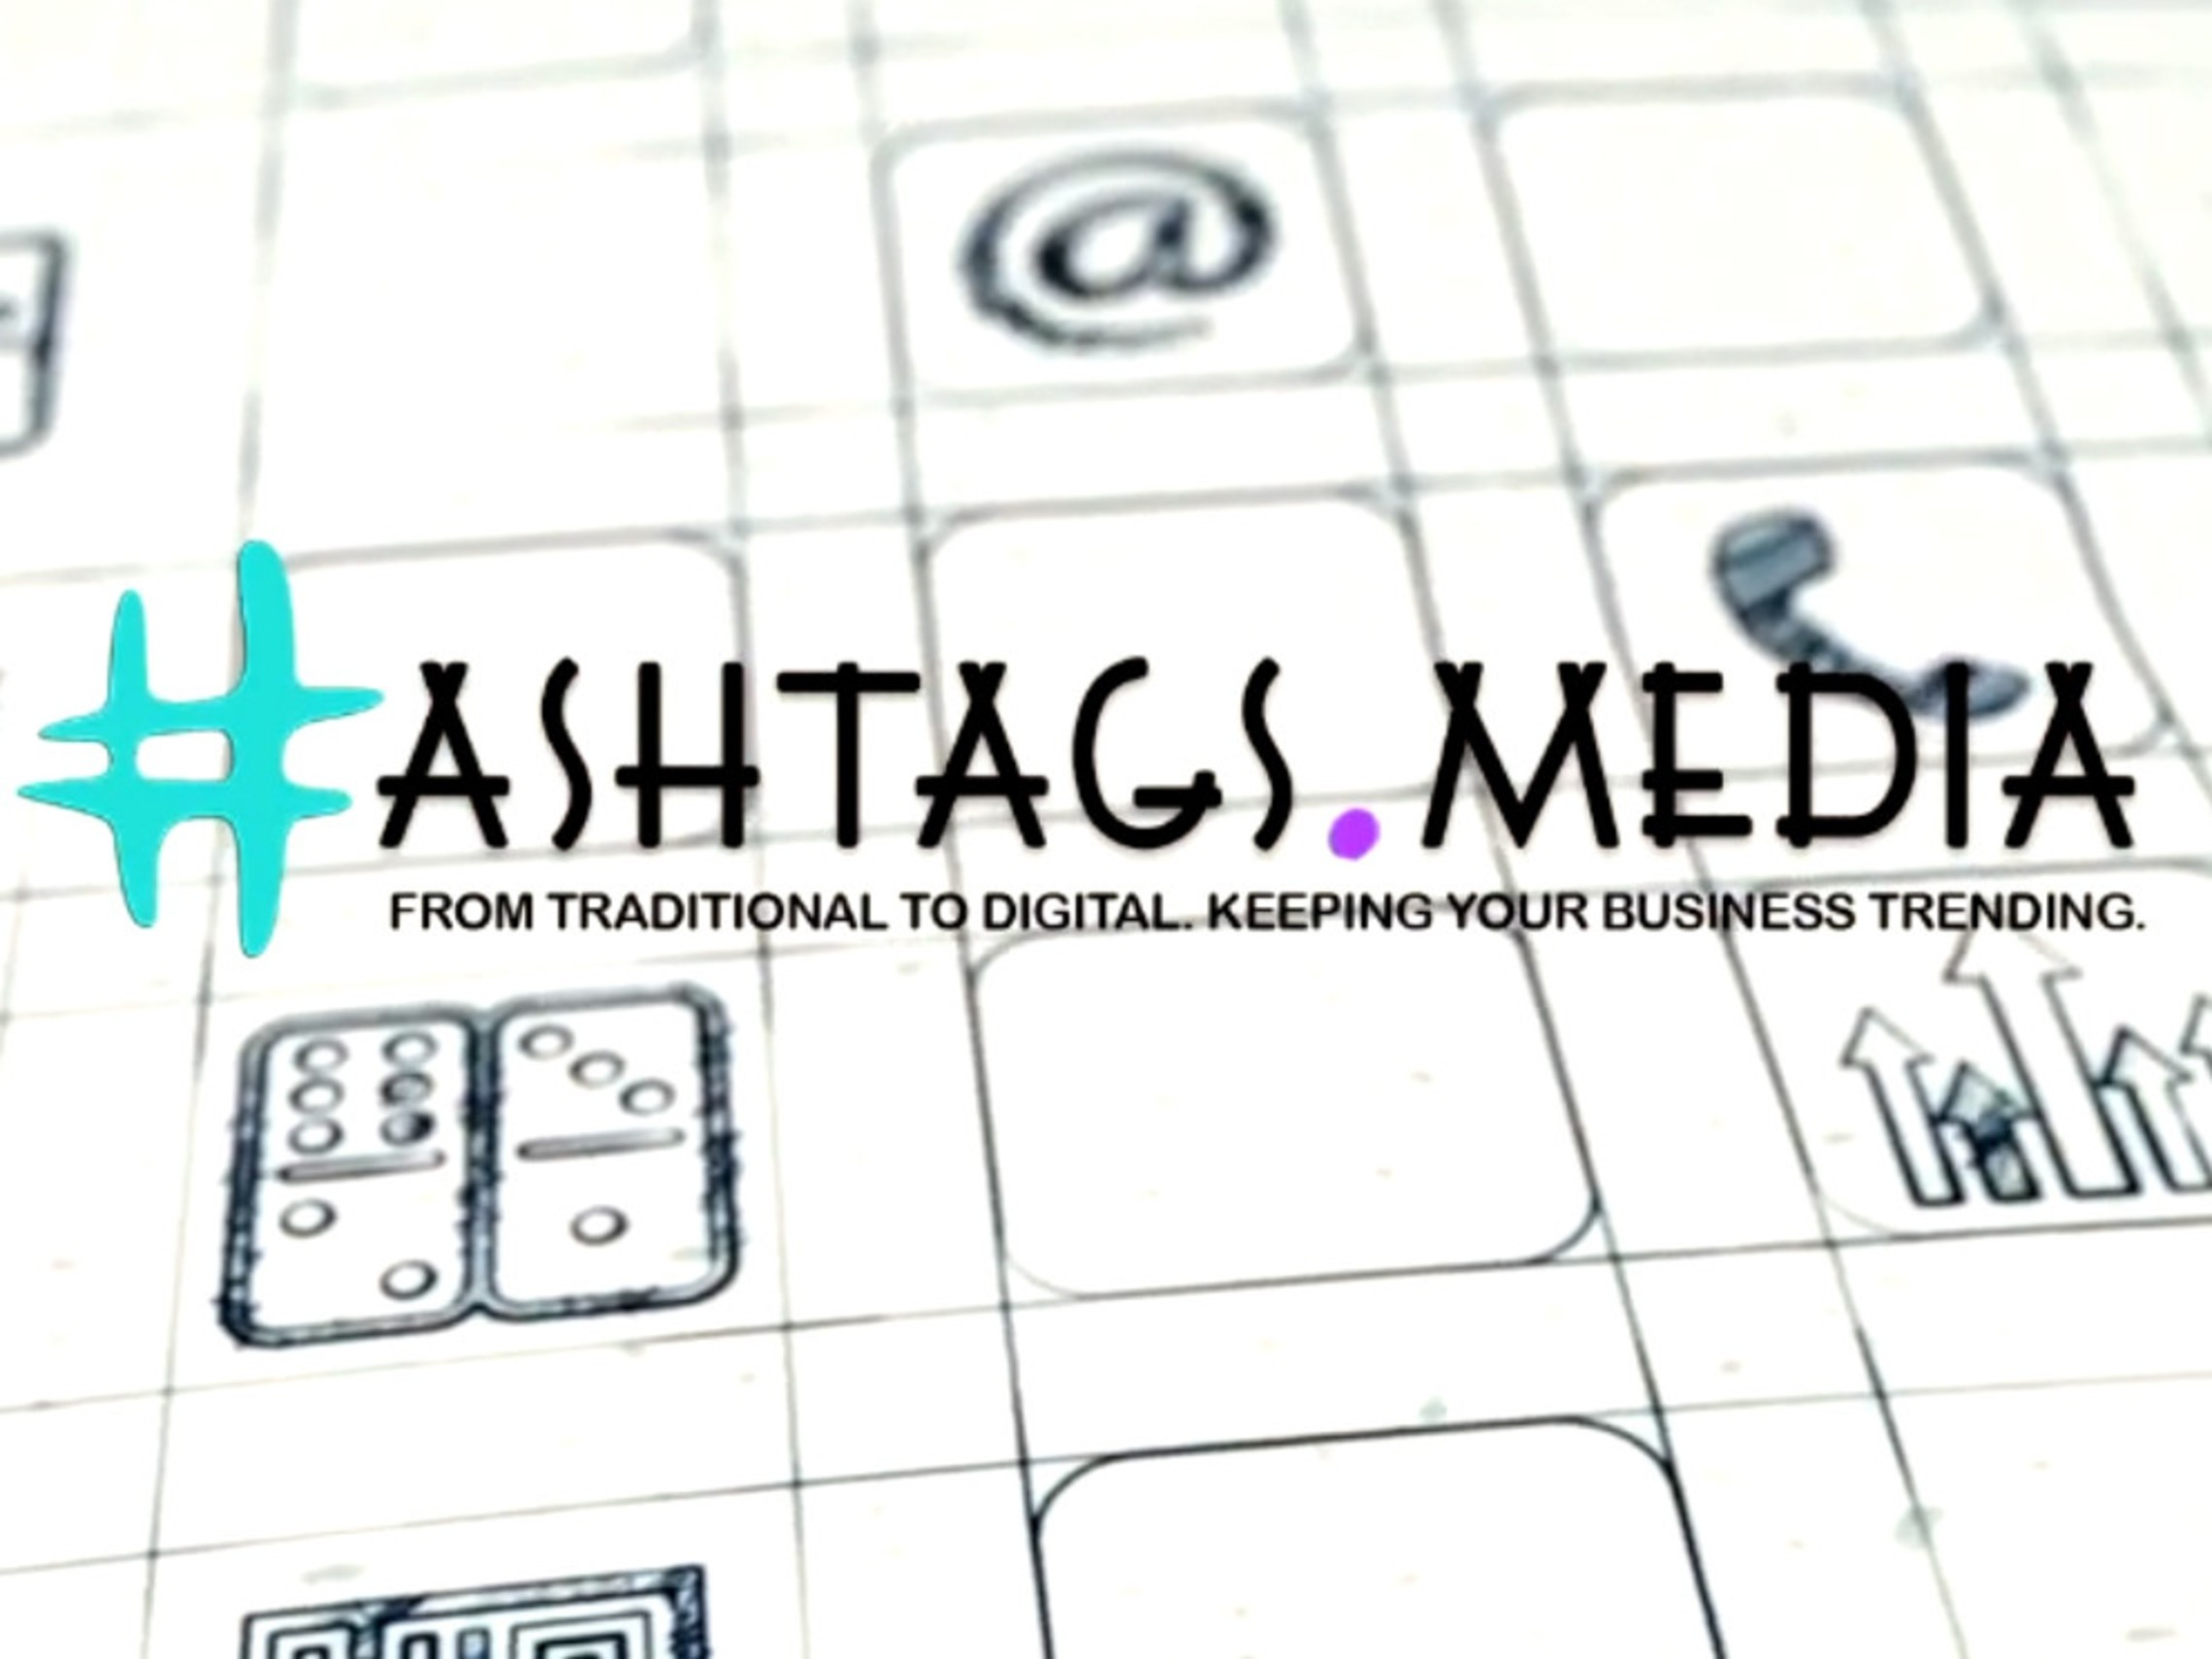 Hashtags Media Logo